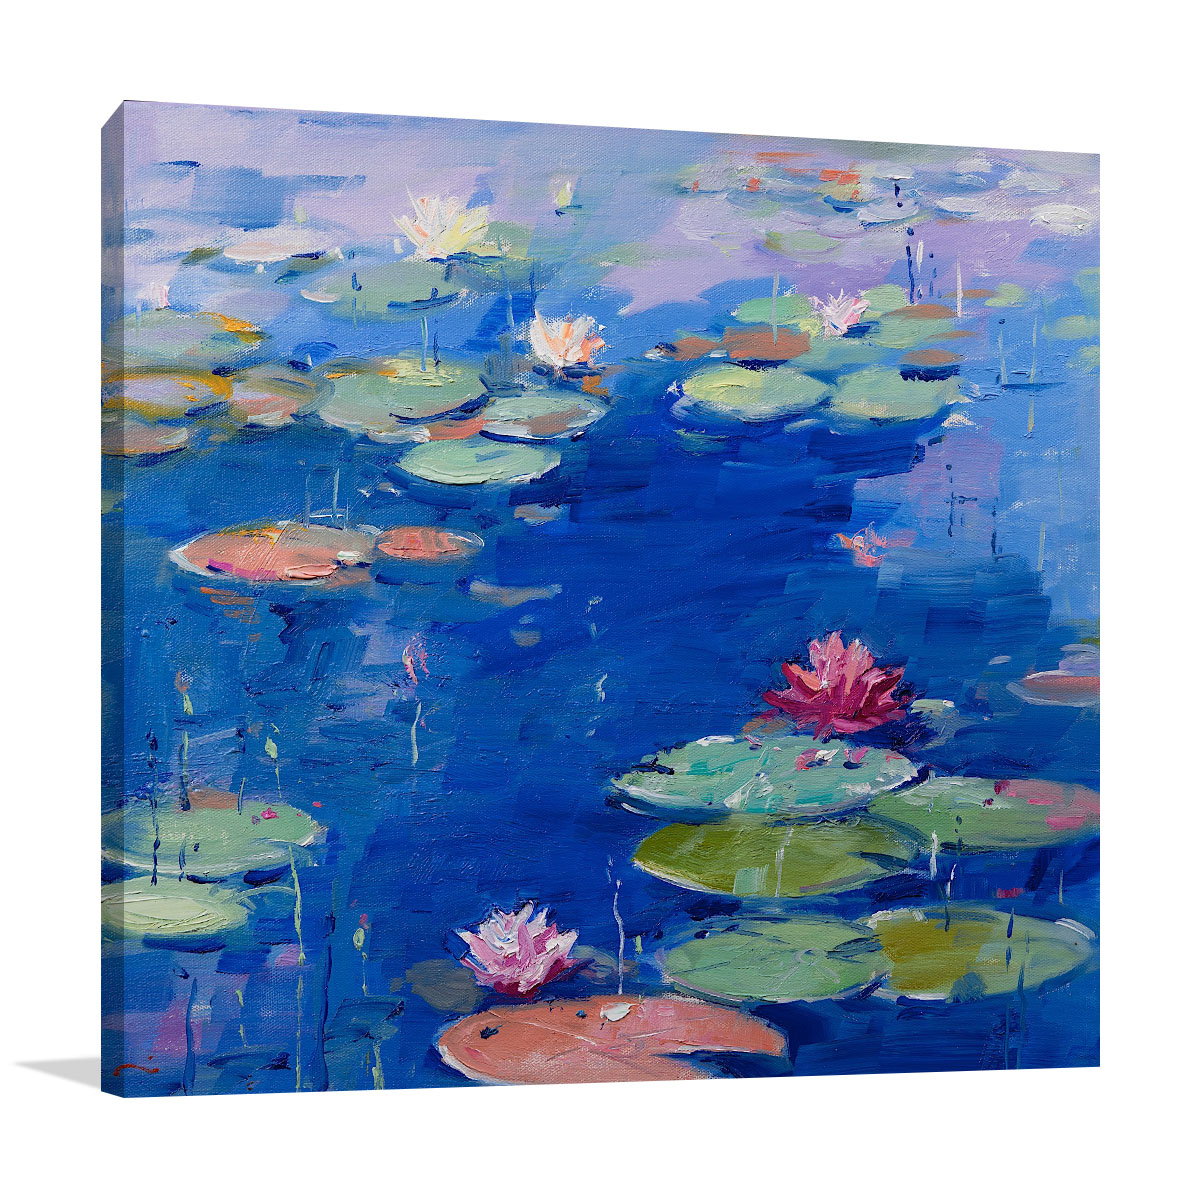 Li Zhou Paintings | Water Lily VII | Prints on Canvas